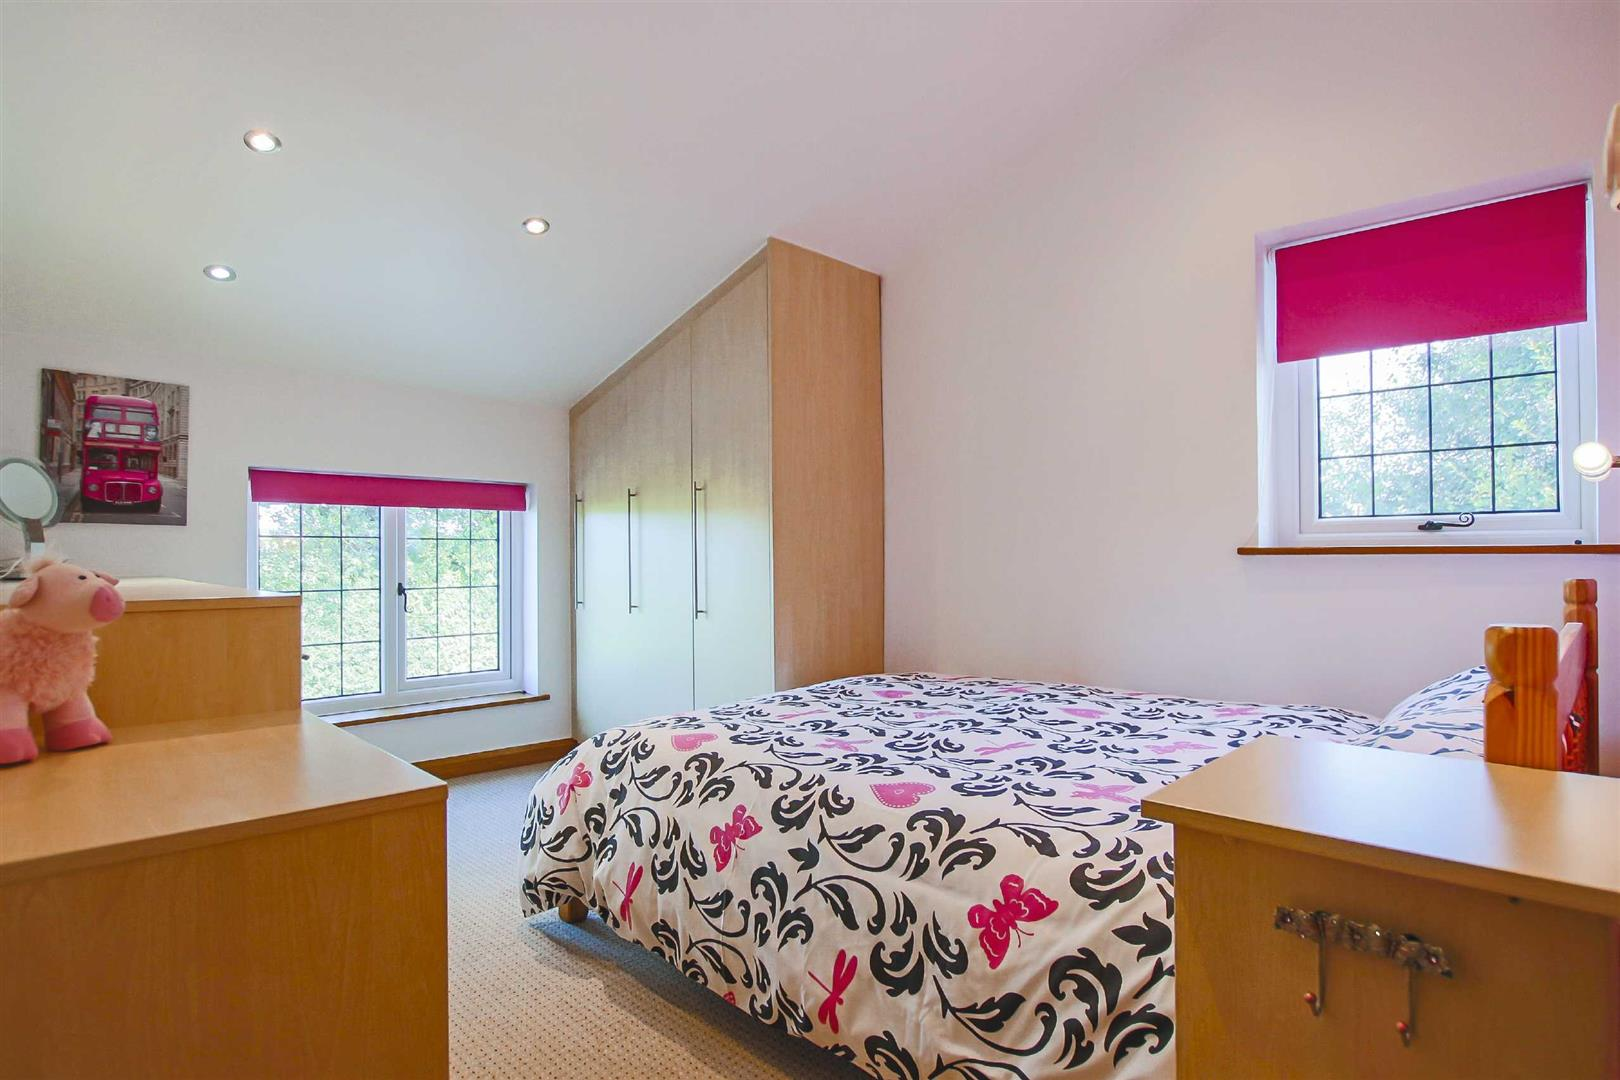 4 Bedroom Semi-detached House For Sale - Image 6